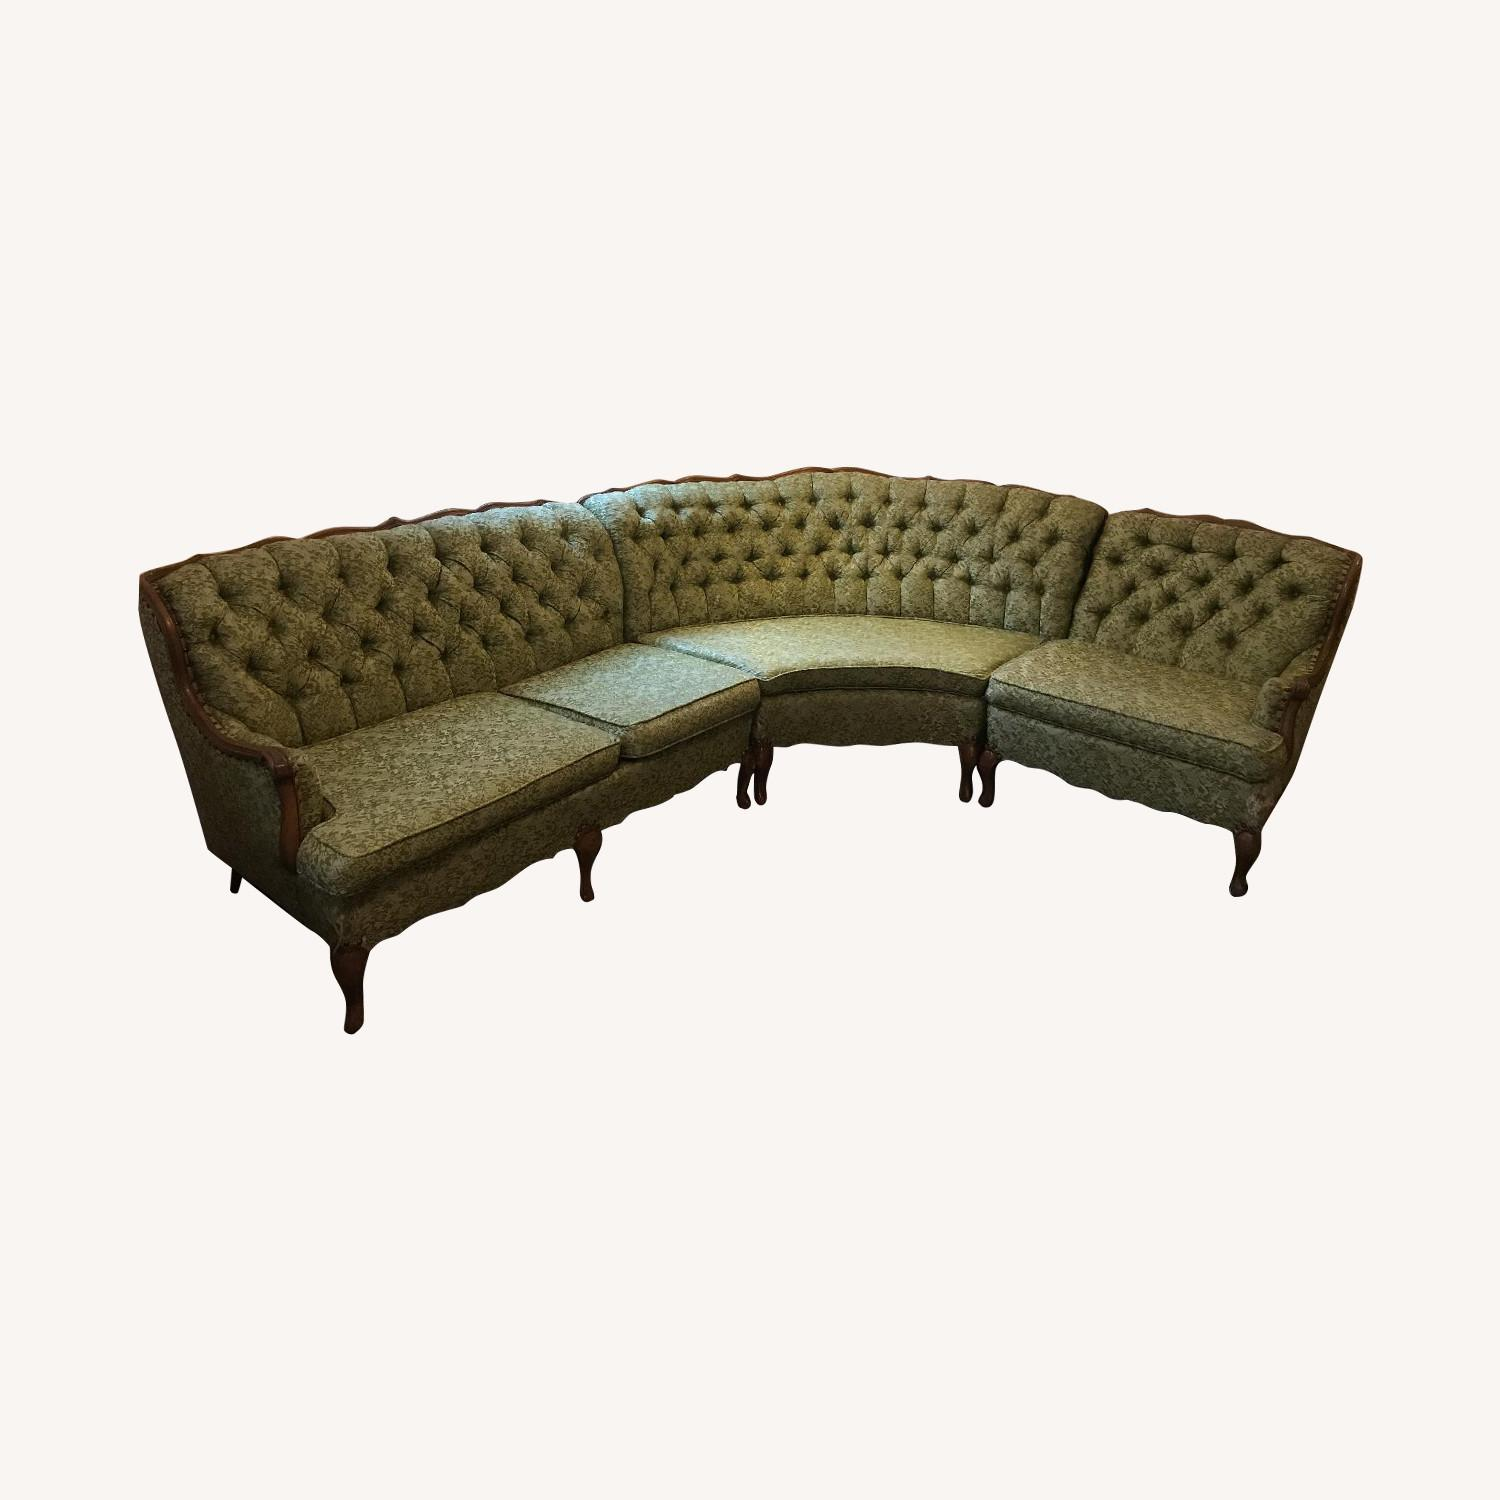 Vintage 1970s French Provincial Tufted Curved Sectional Sofa - image-0